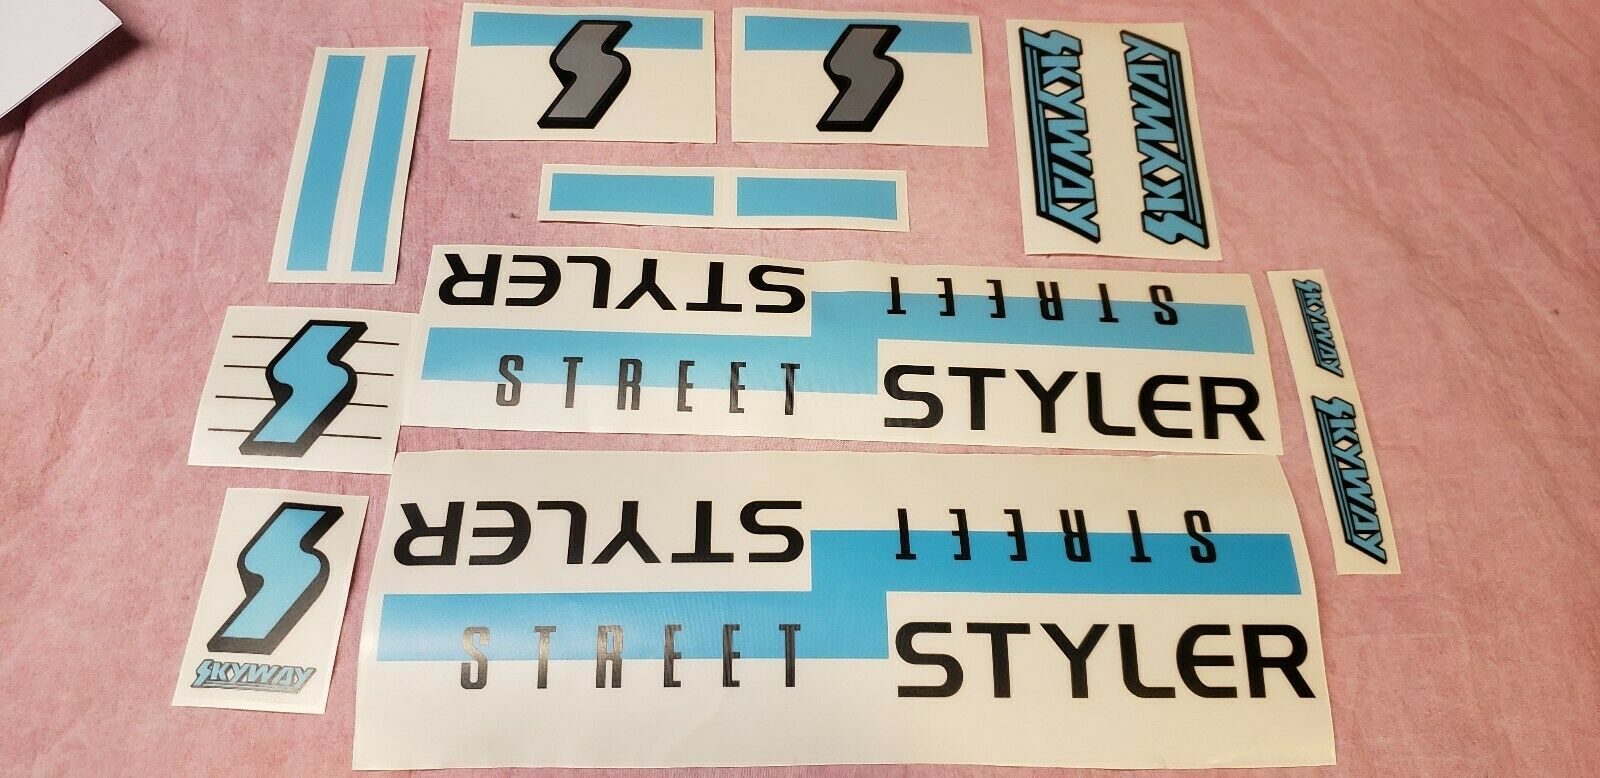 Skyway Street Styler  88 Reproduction Decals Old Bmx 20  Freestyle Bike Beat Ta  global distribution